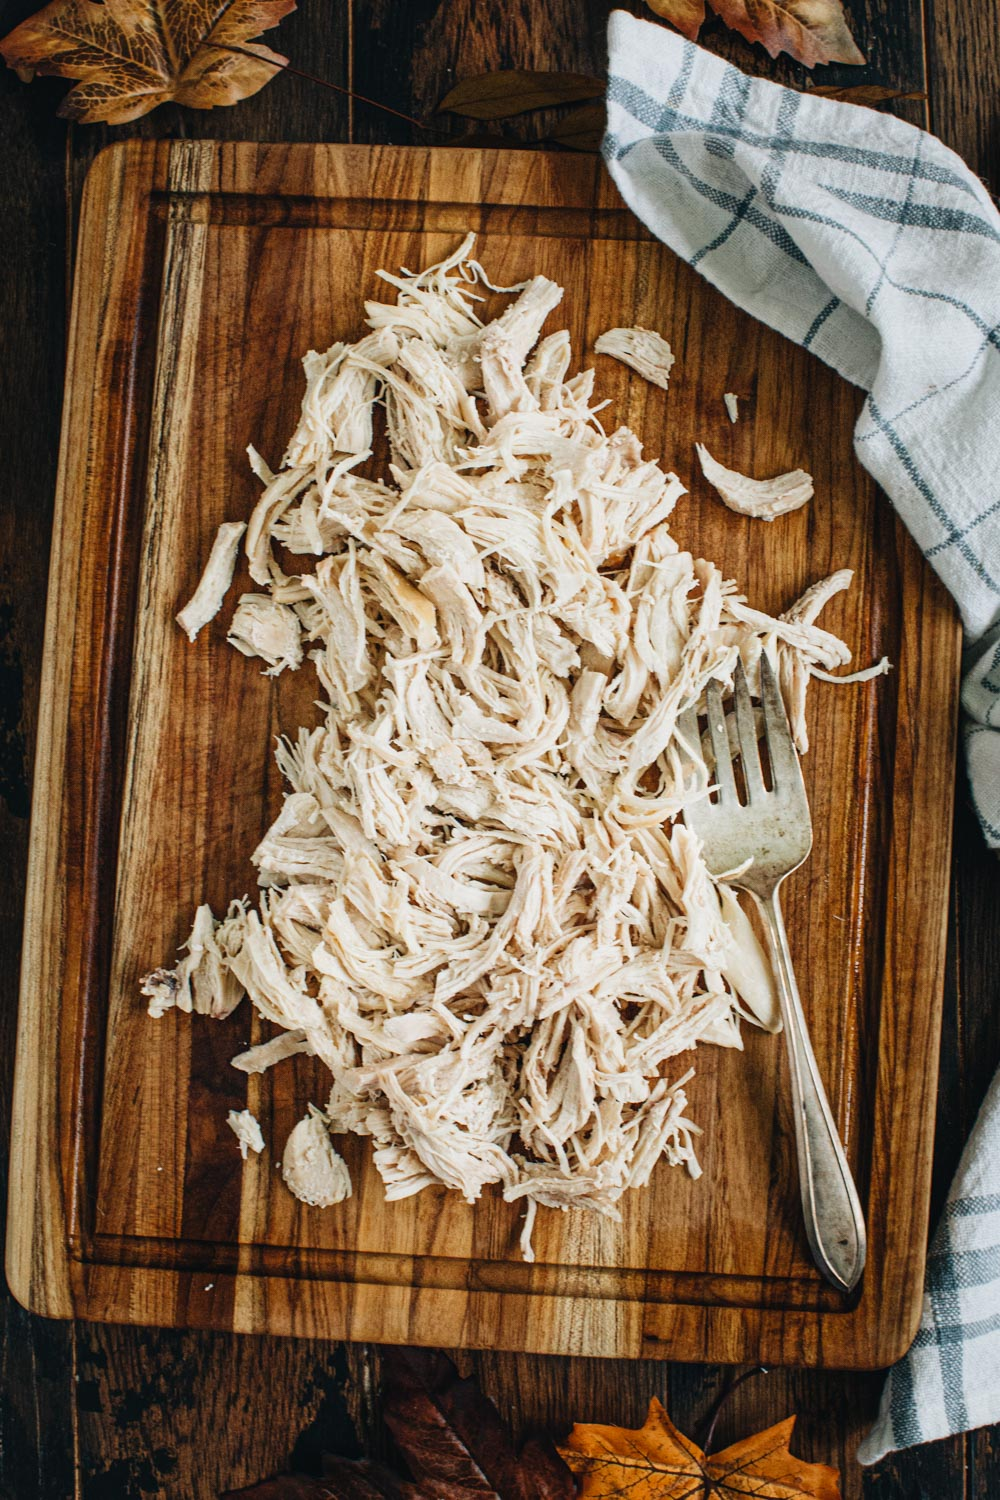 Pulled chicken on a wooden cutting board with a serving fork.